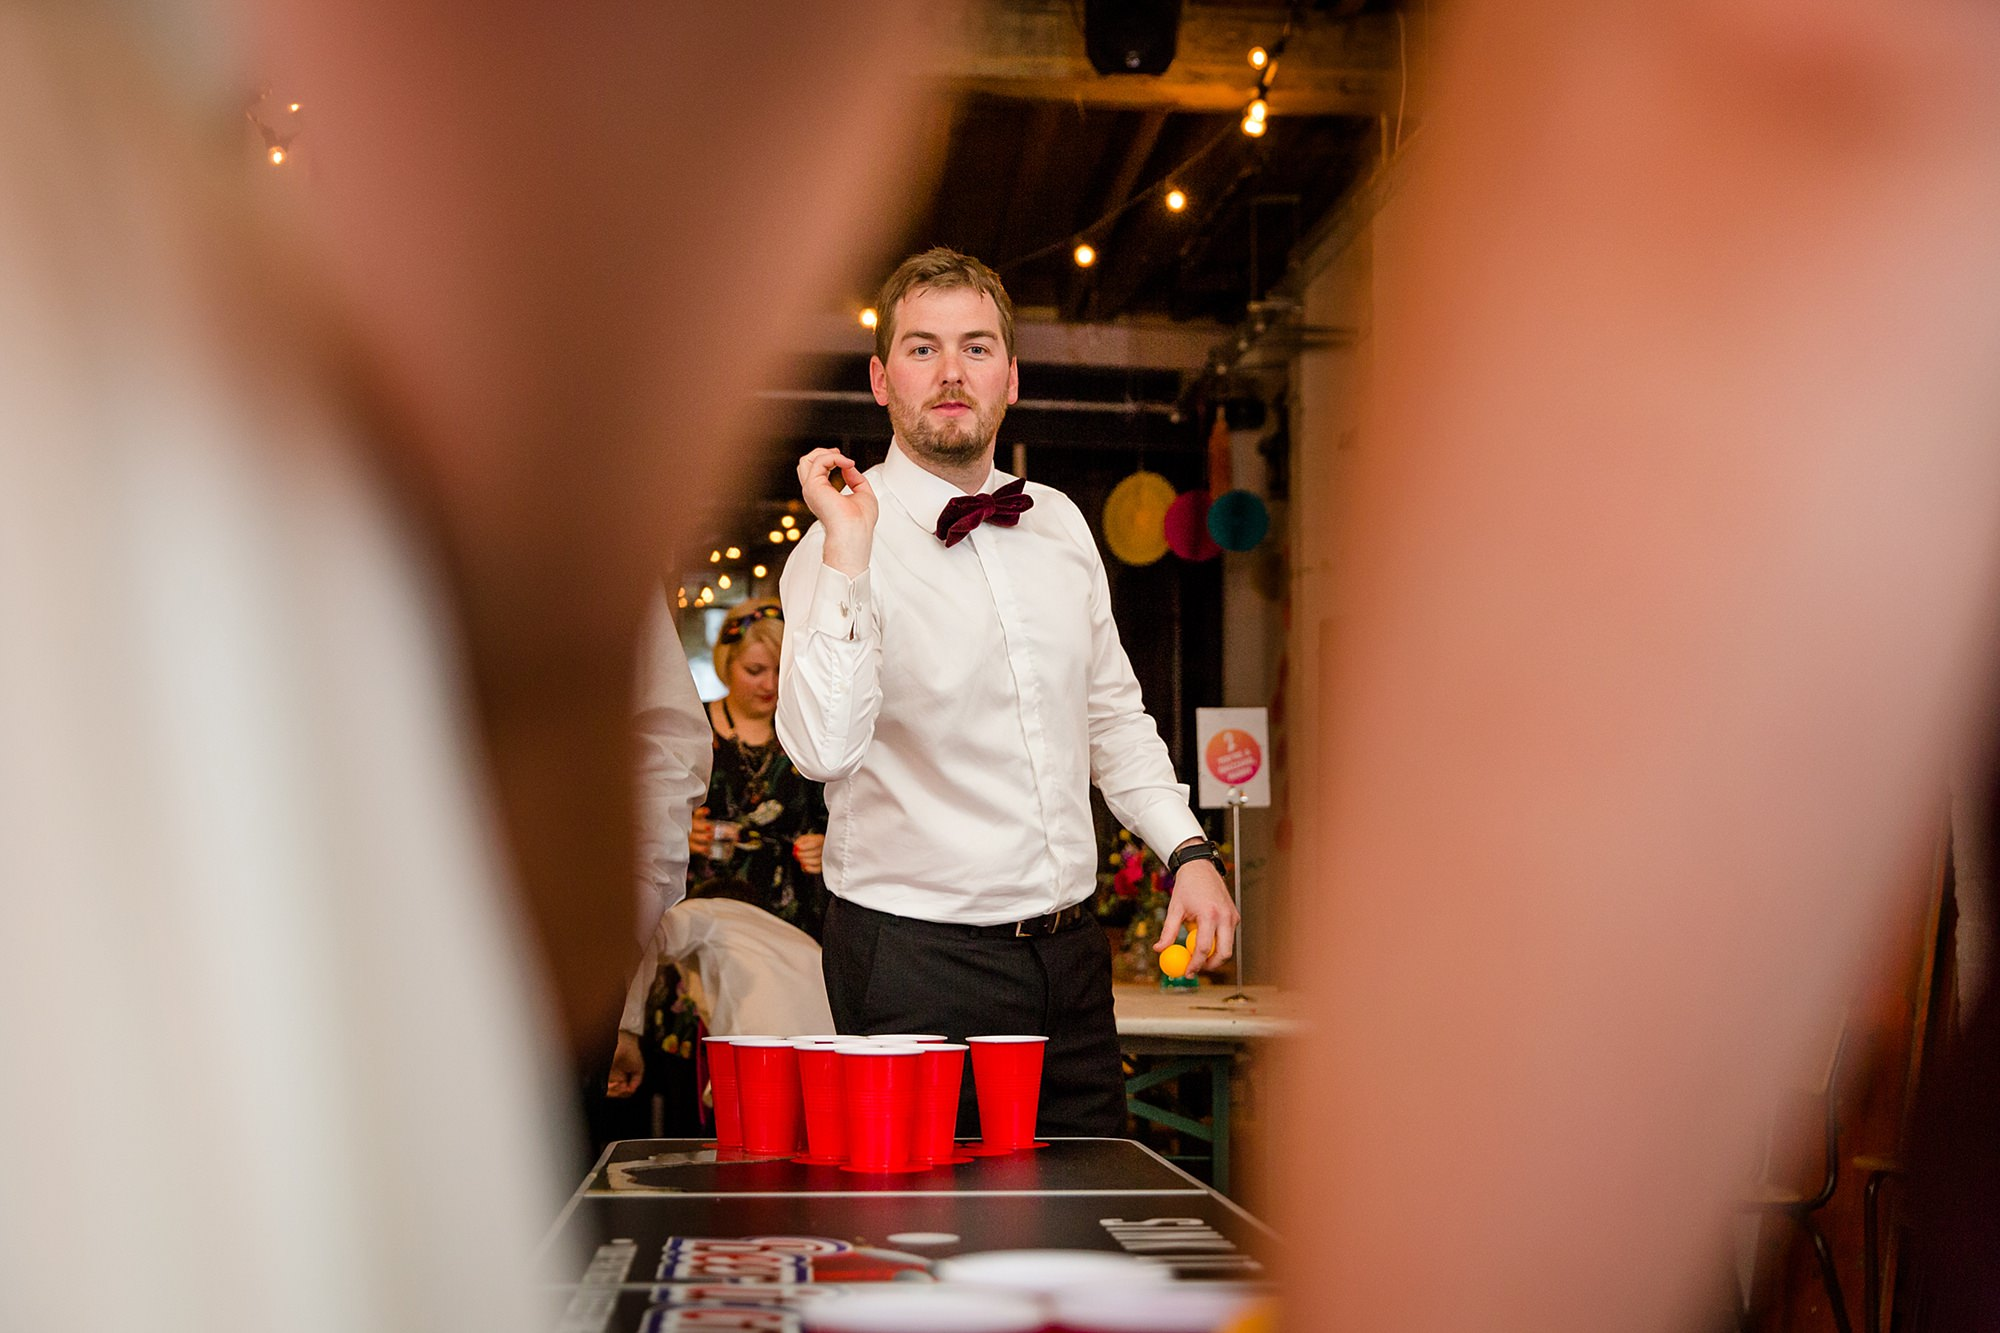 Fun London Wedding groom playing beer pong